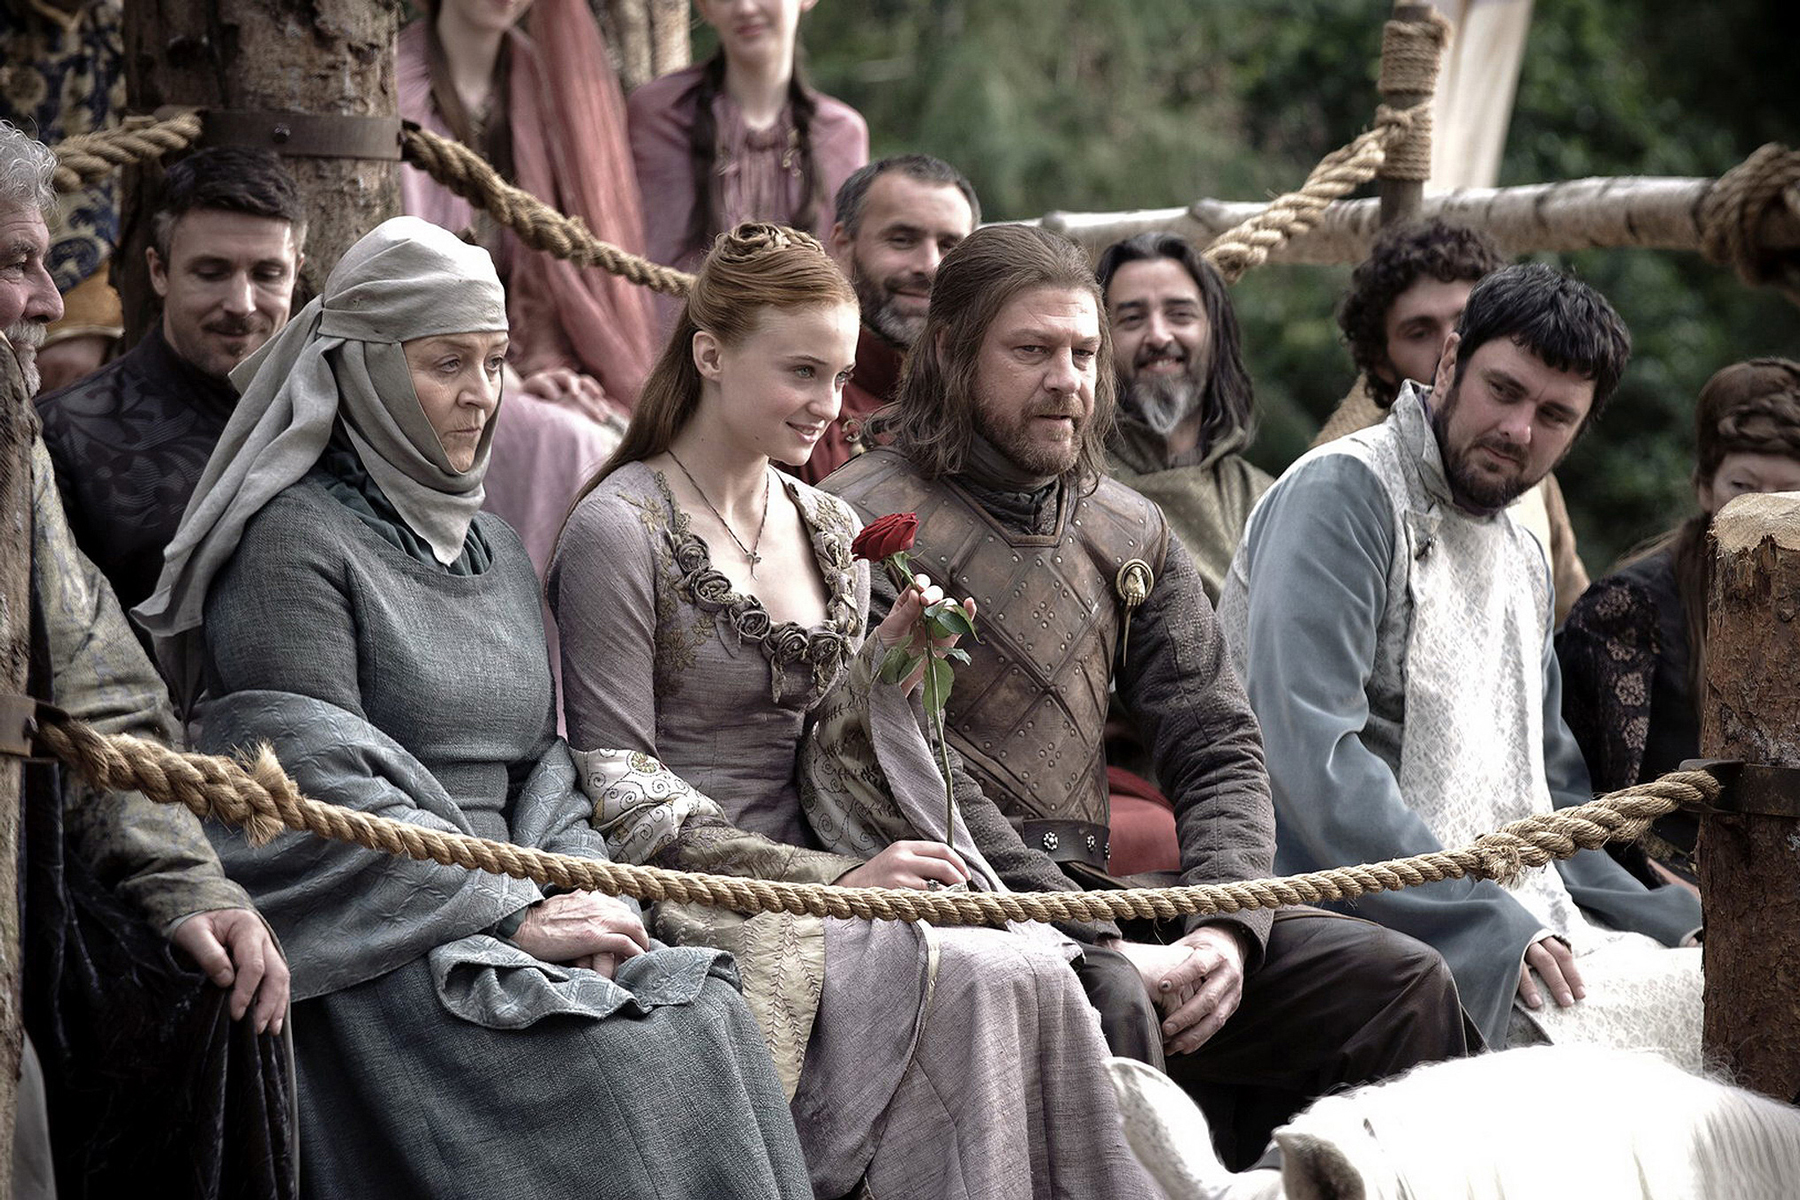 Game of Thrones (HBO) TV Series Season 1, 2011Shown from left, in center: Susan Brown, Sophie Turner, Sean Bean